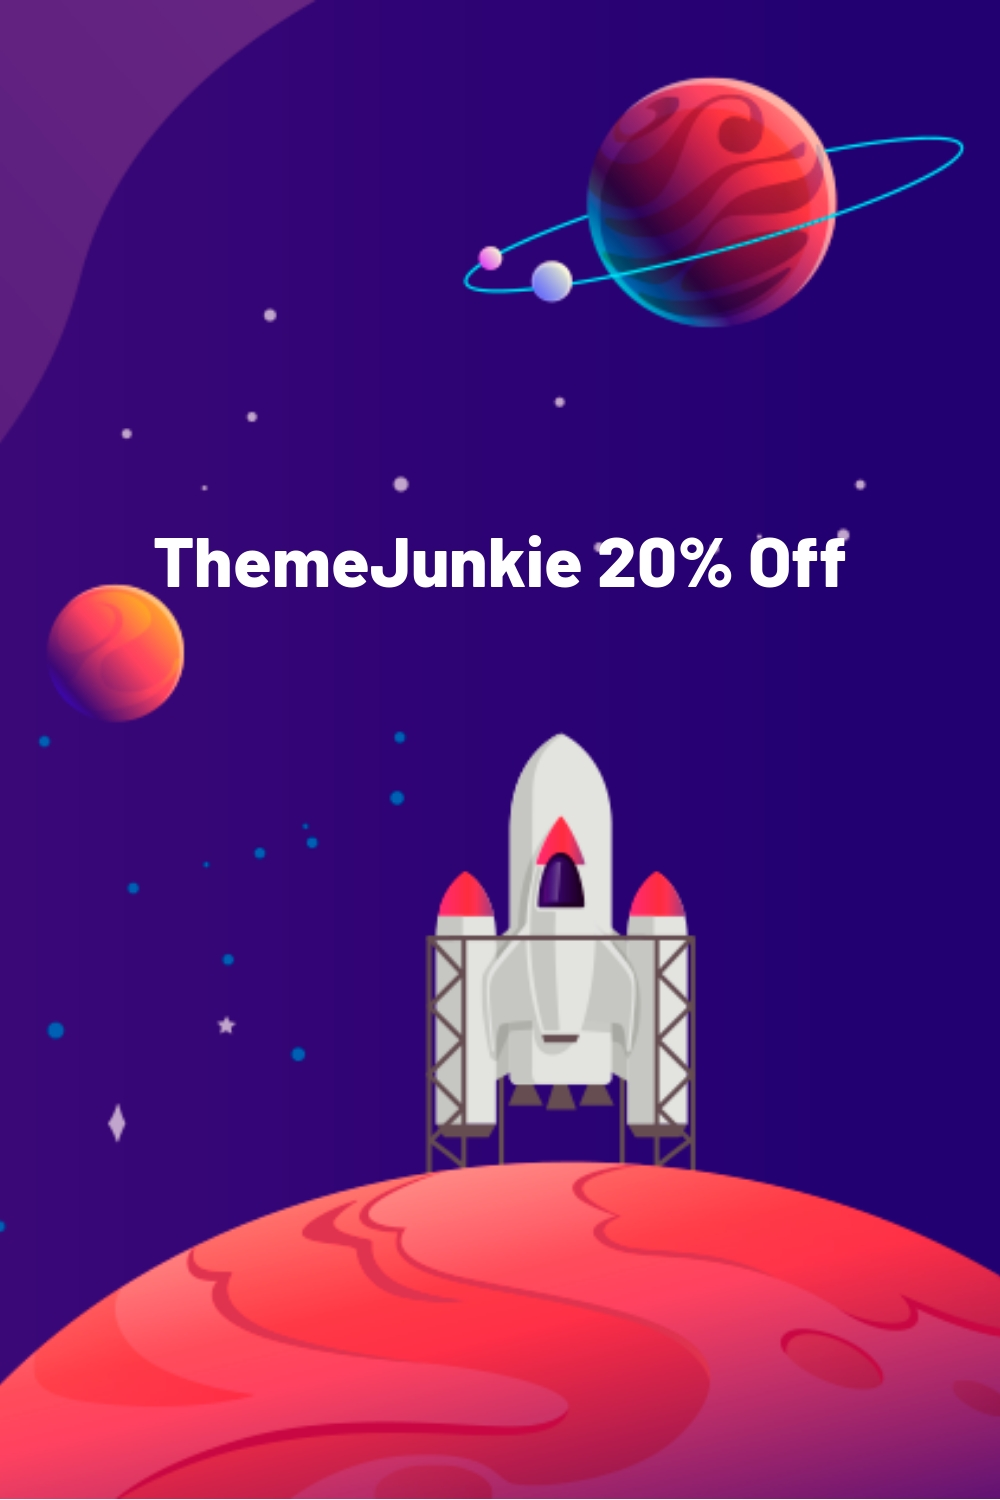 ThemeJunkie 20% Off